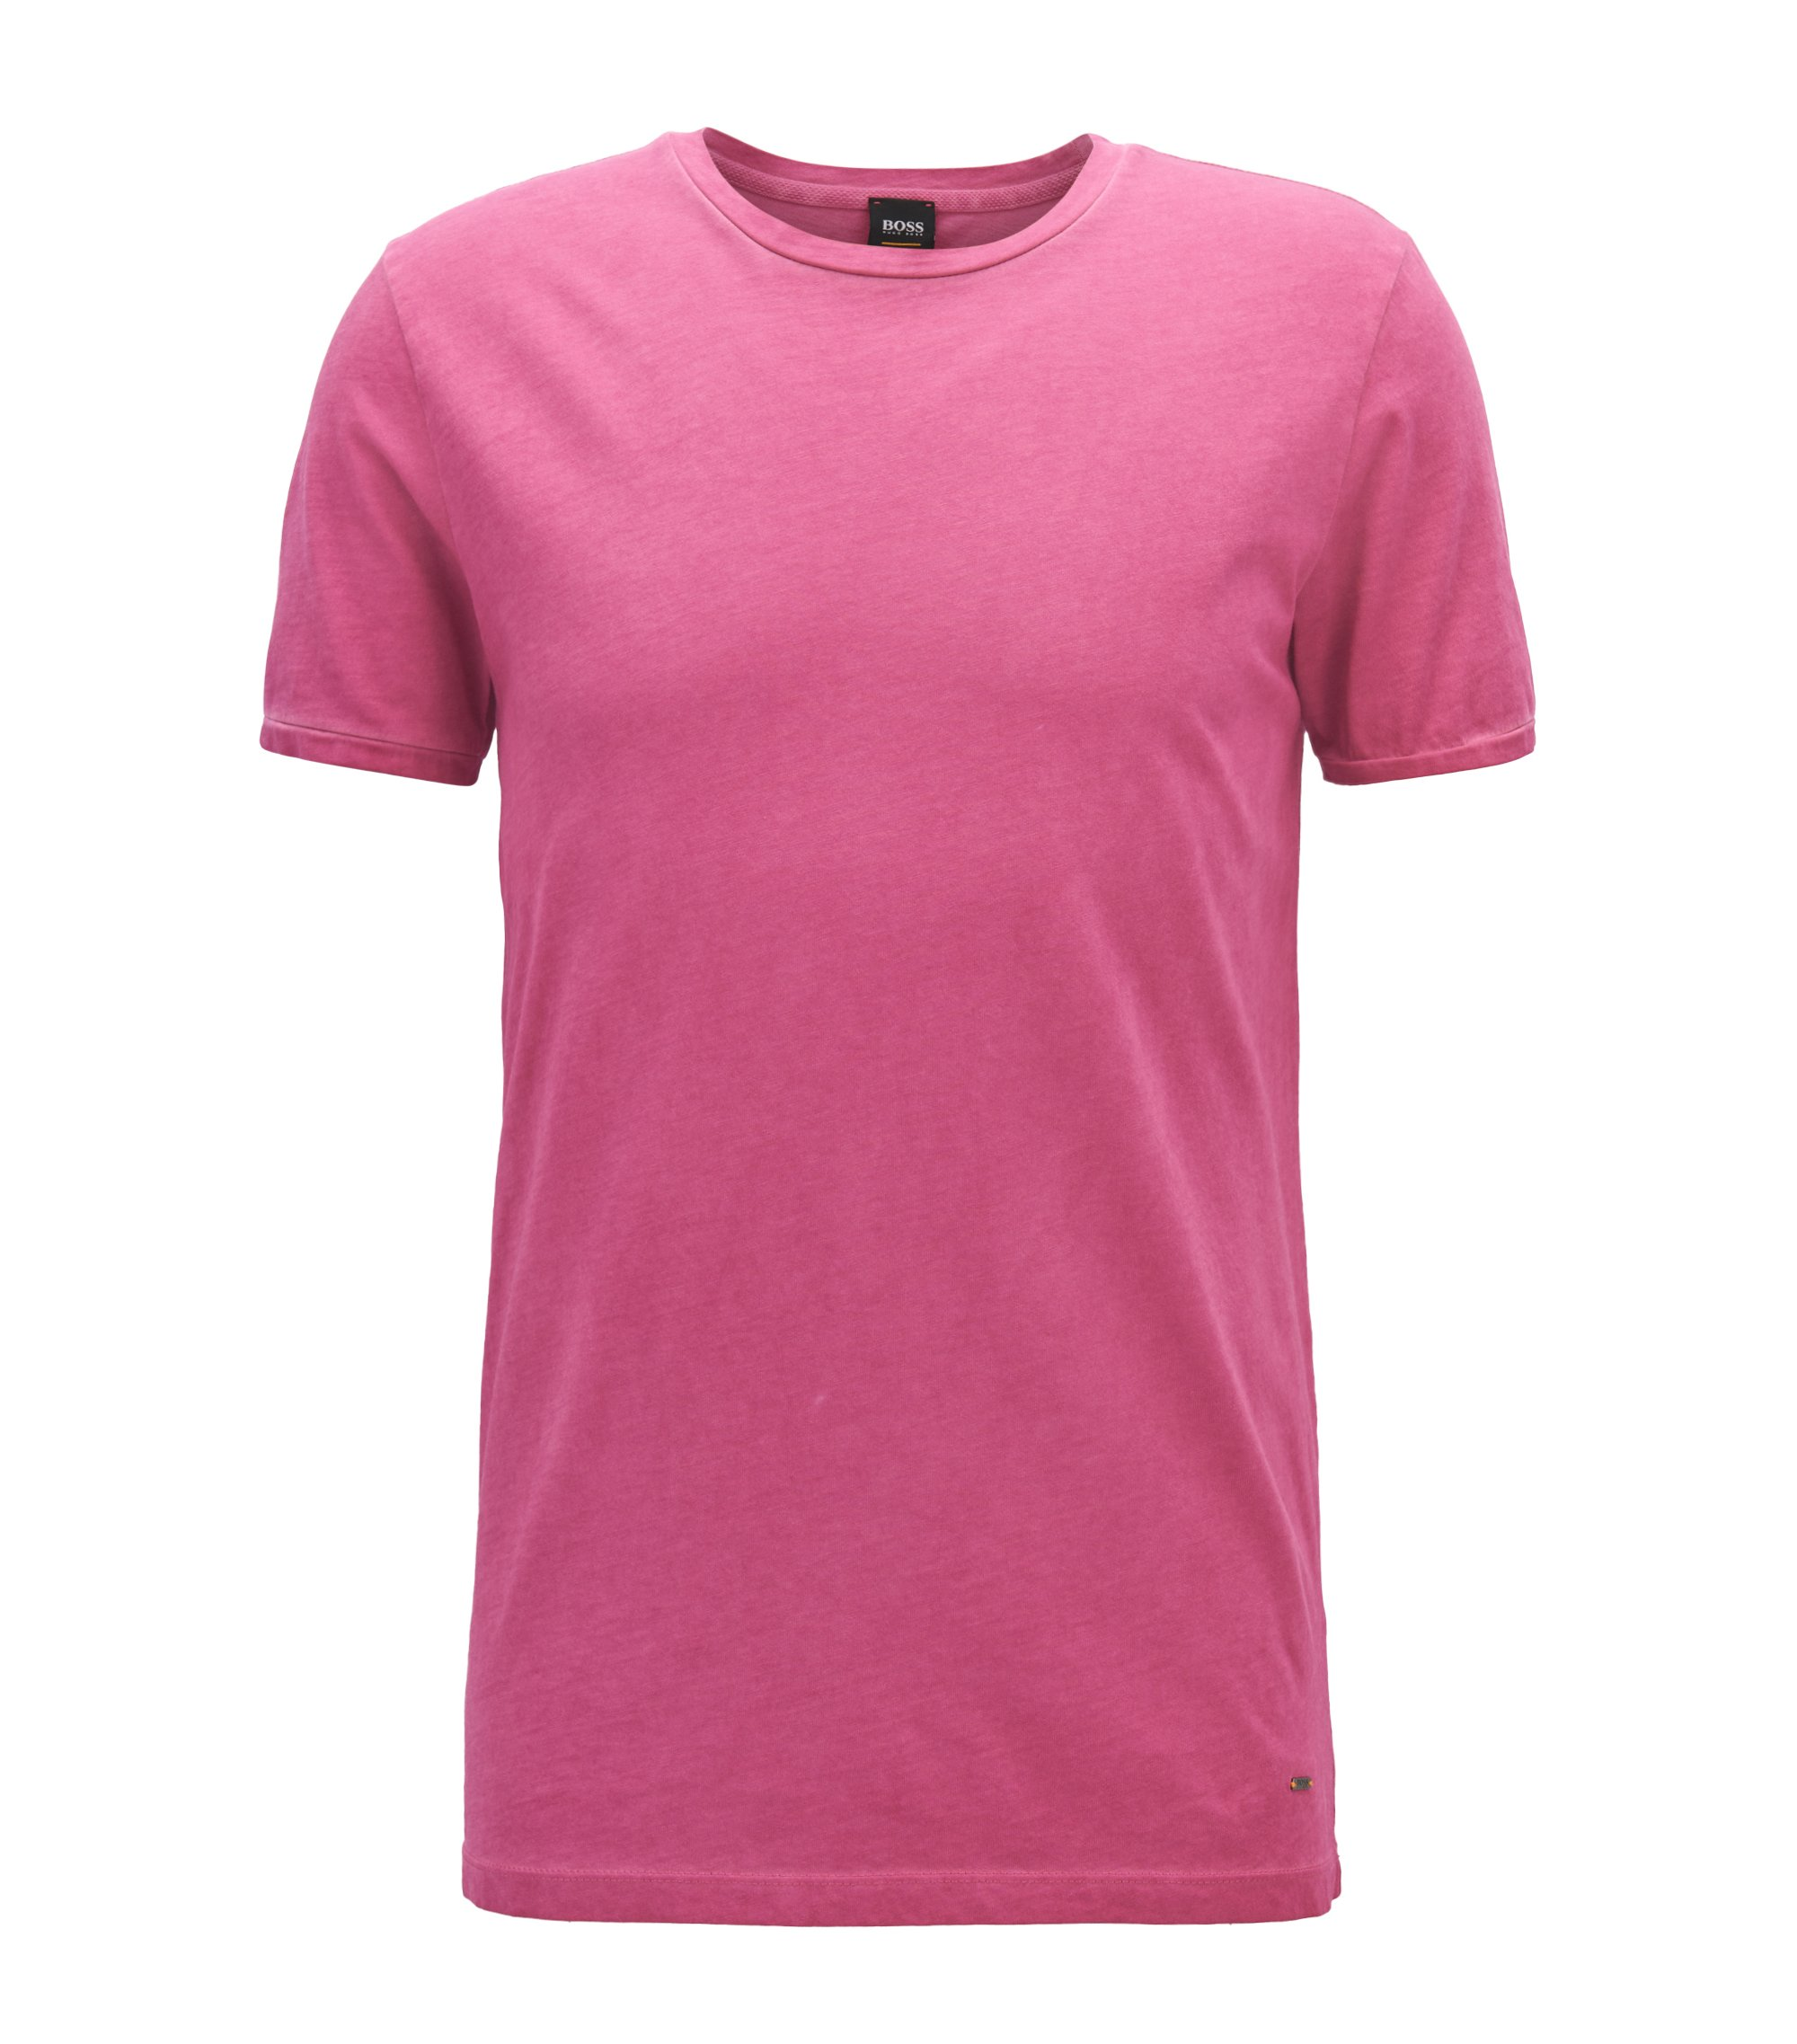 T-shirt Regular Fit en coton teint en pièce, Lilas